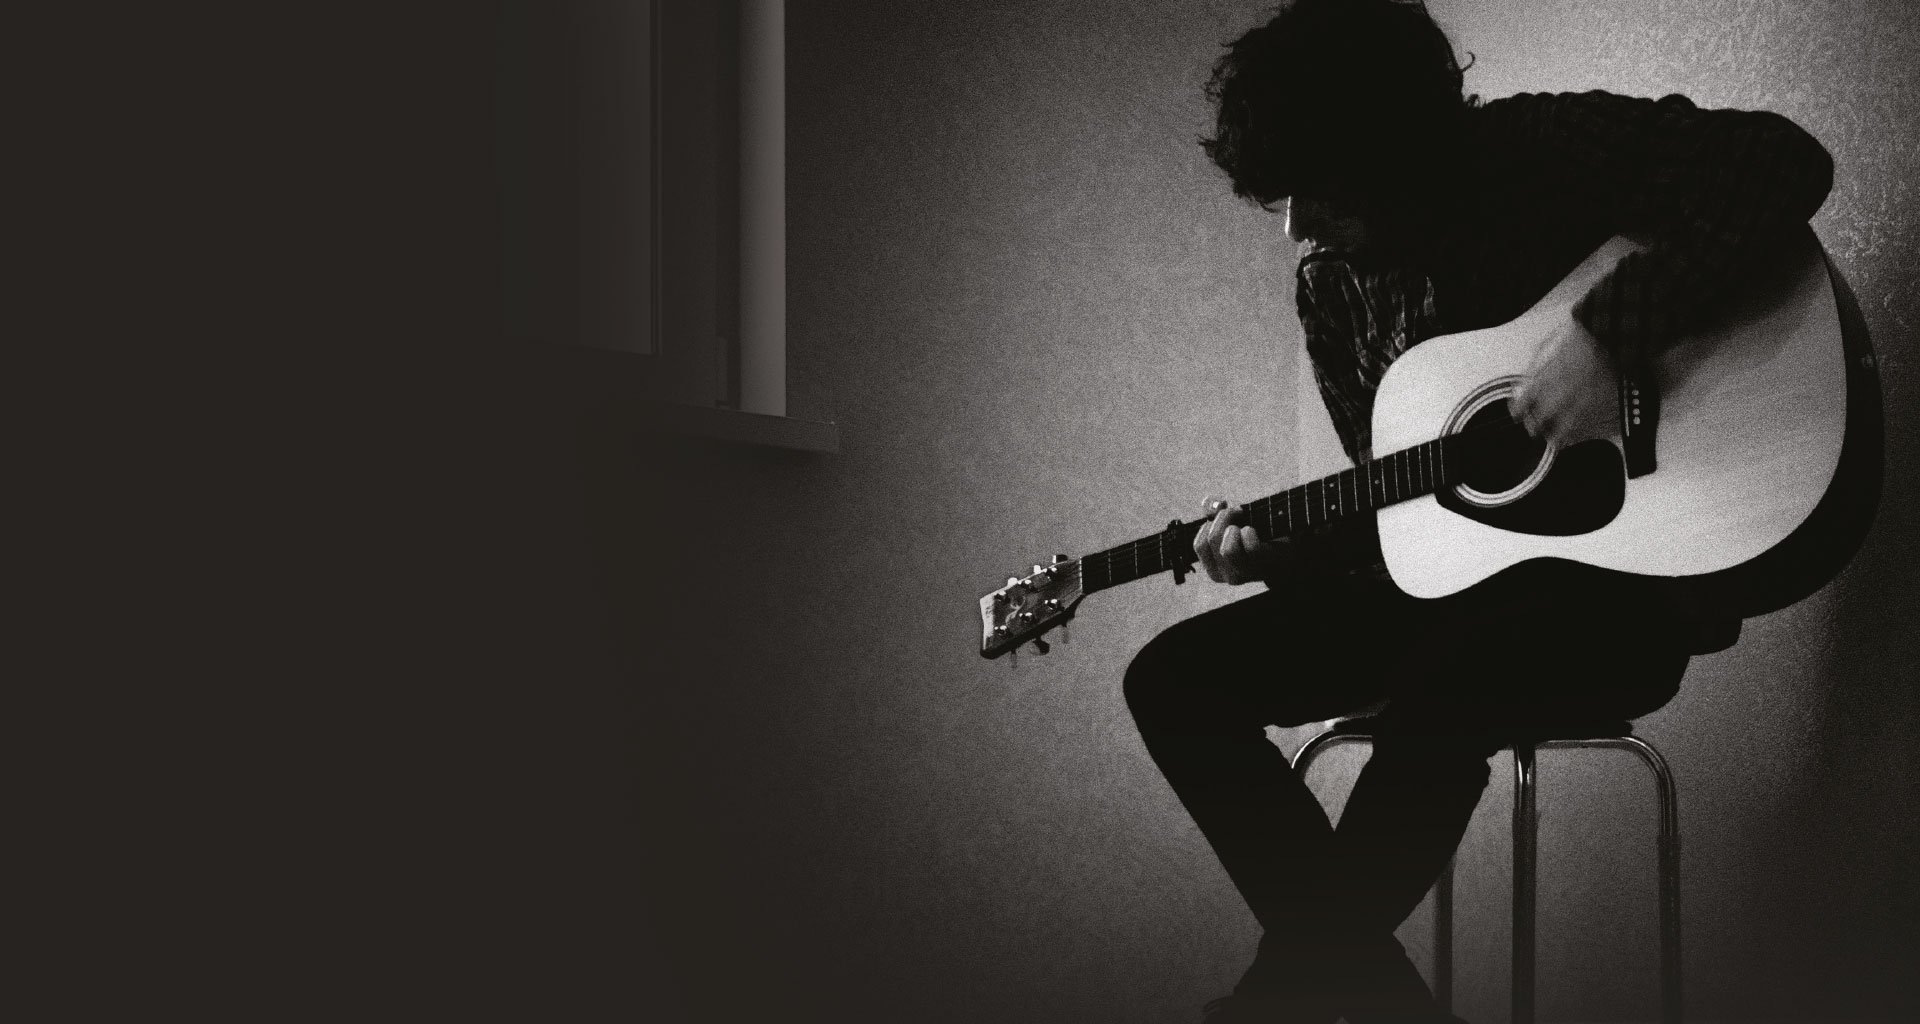 Pursuing Guitar Lessons Means More Than Learning a New Song!